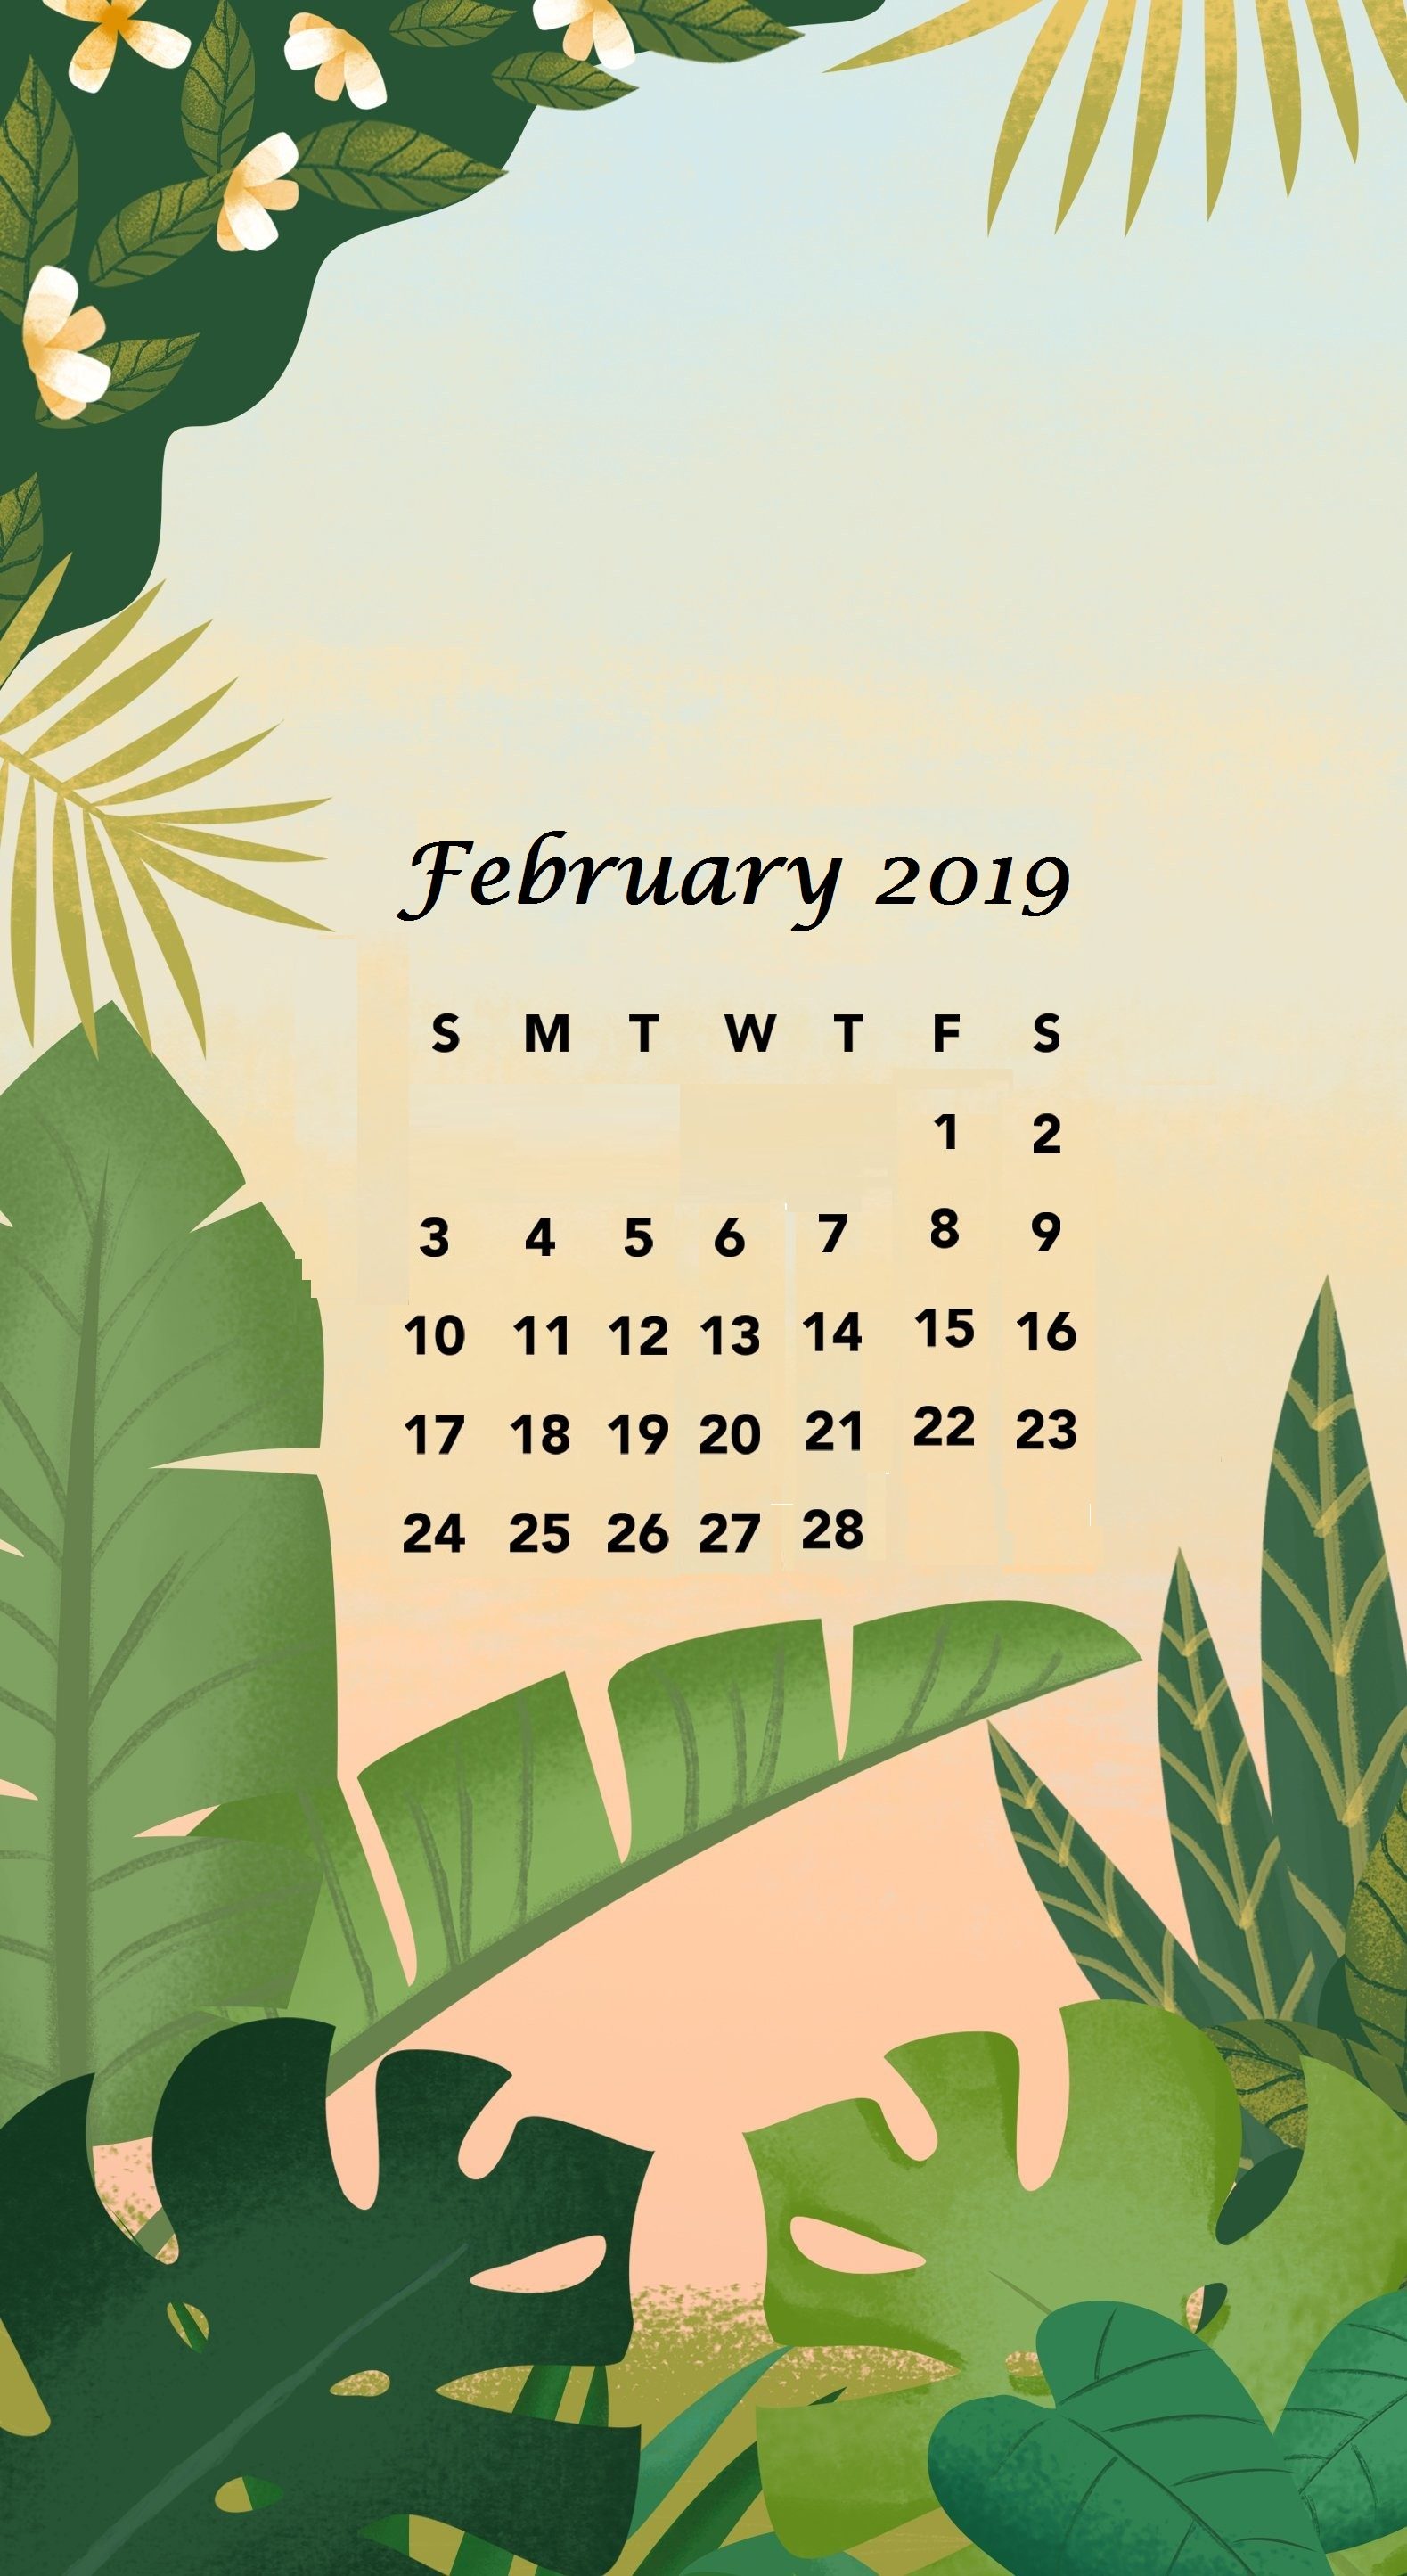 February 2019 Greeny iPhone Calendar